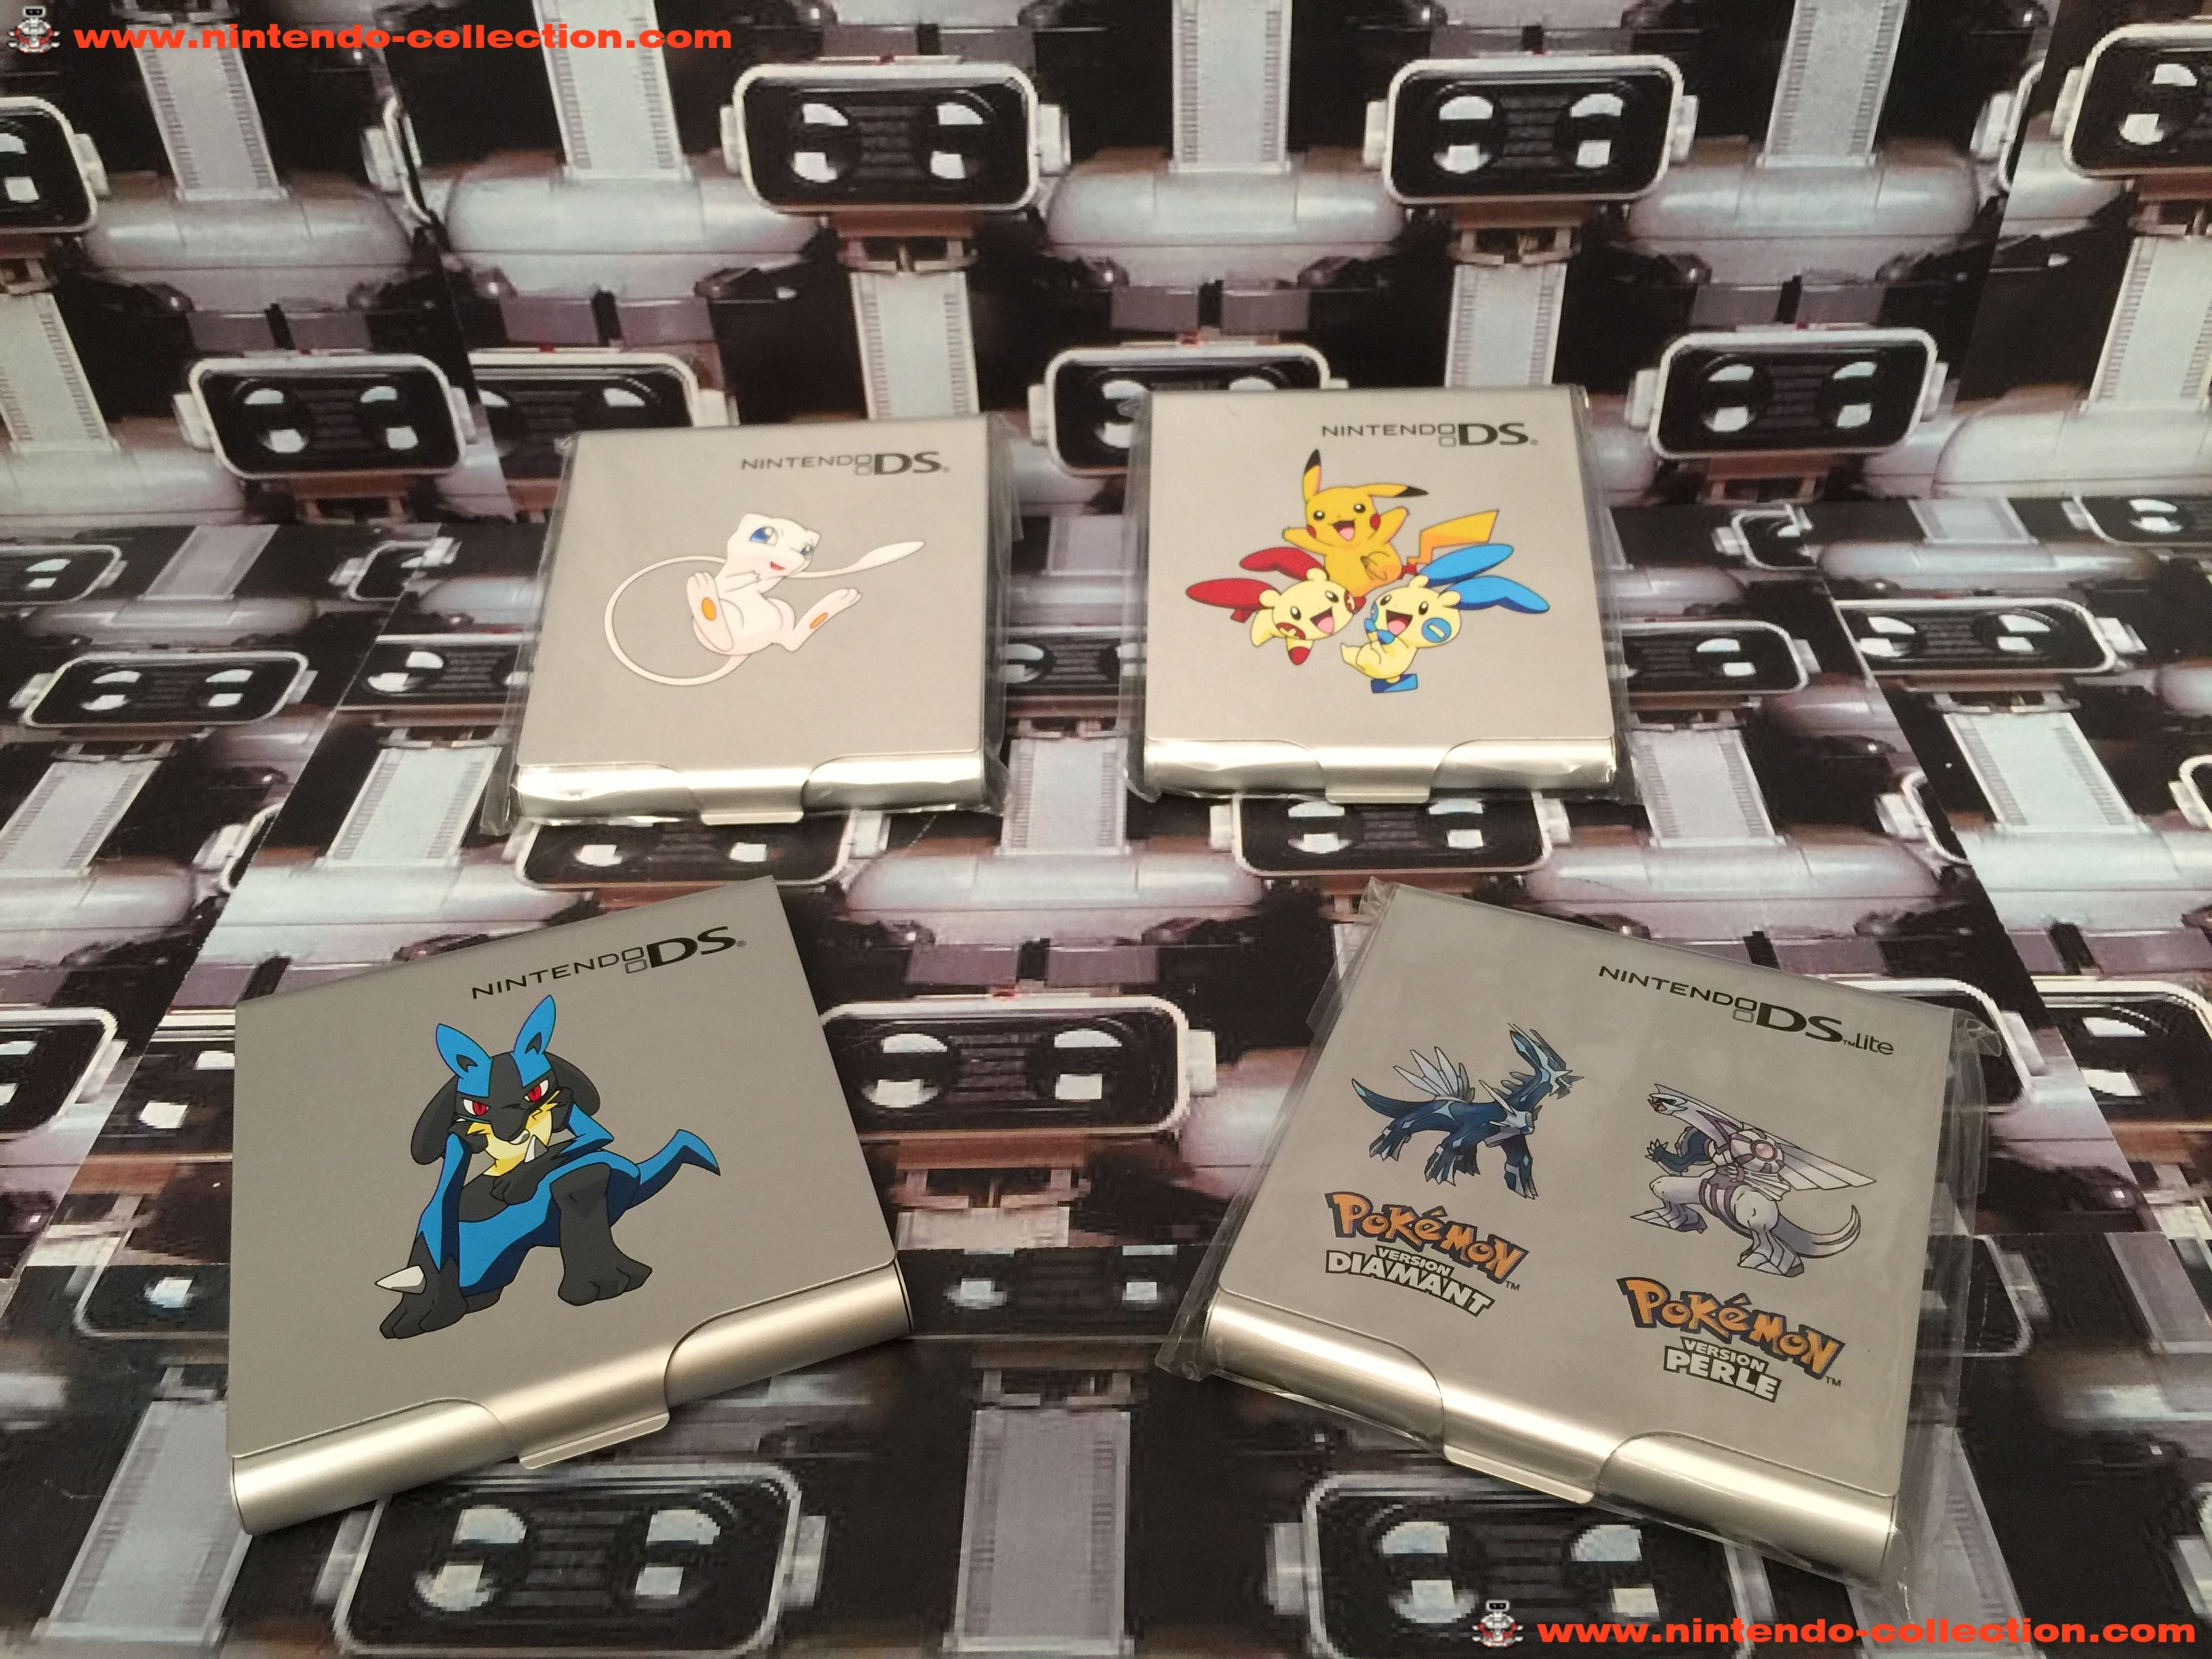 www.nintendo-collection.com - Nintendo DS Club Nintendo Pokmeon Case